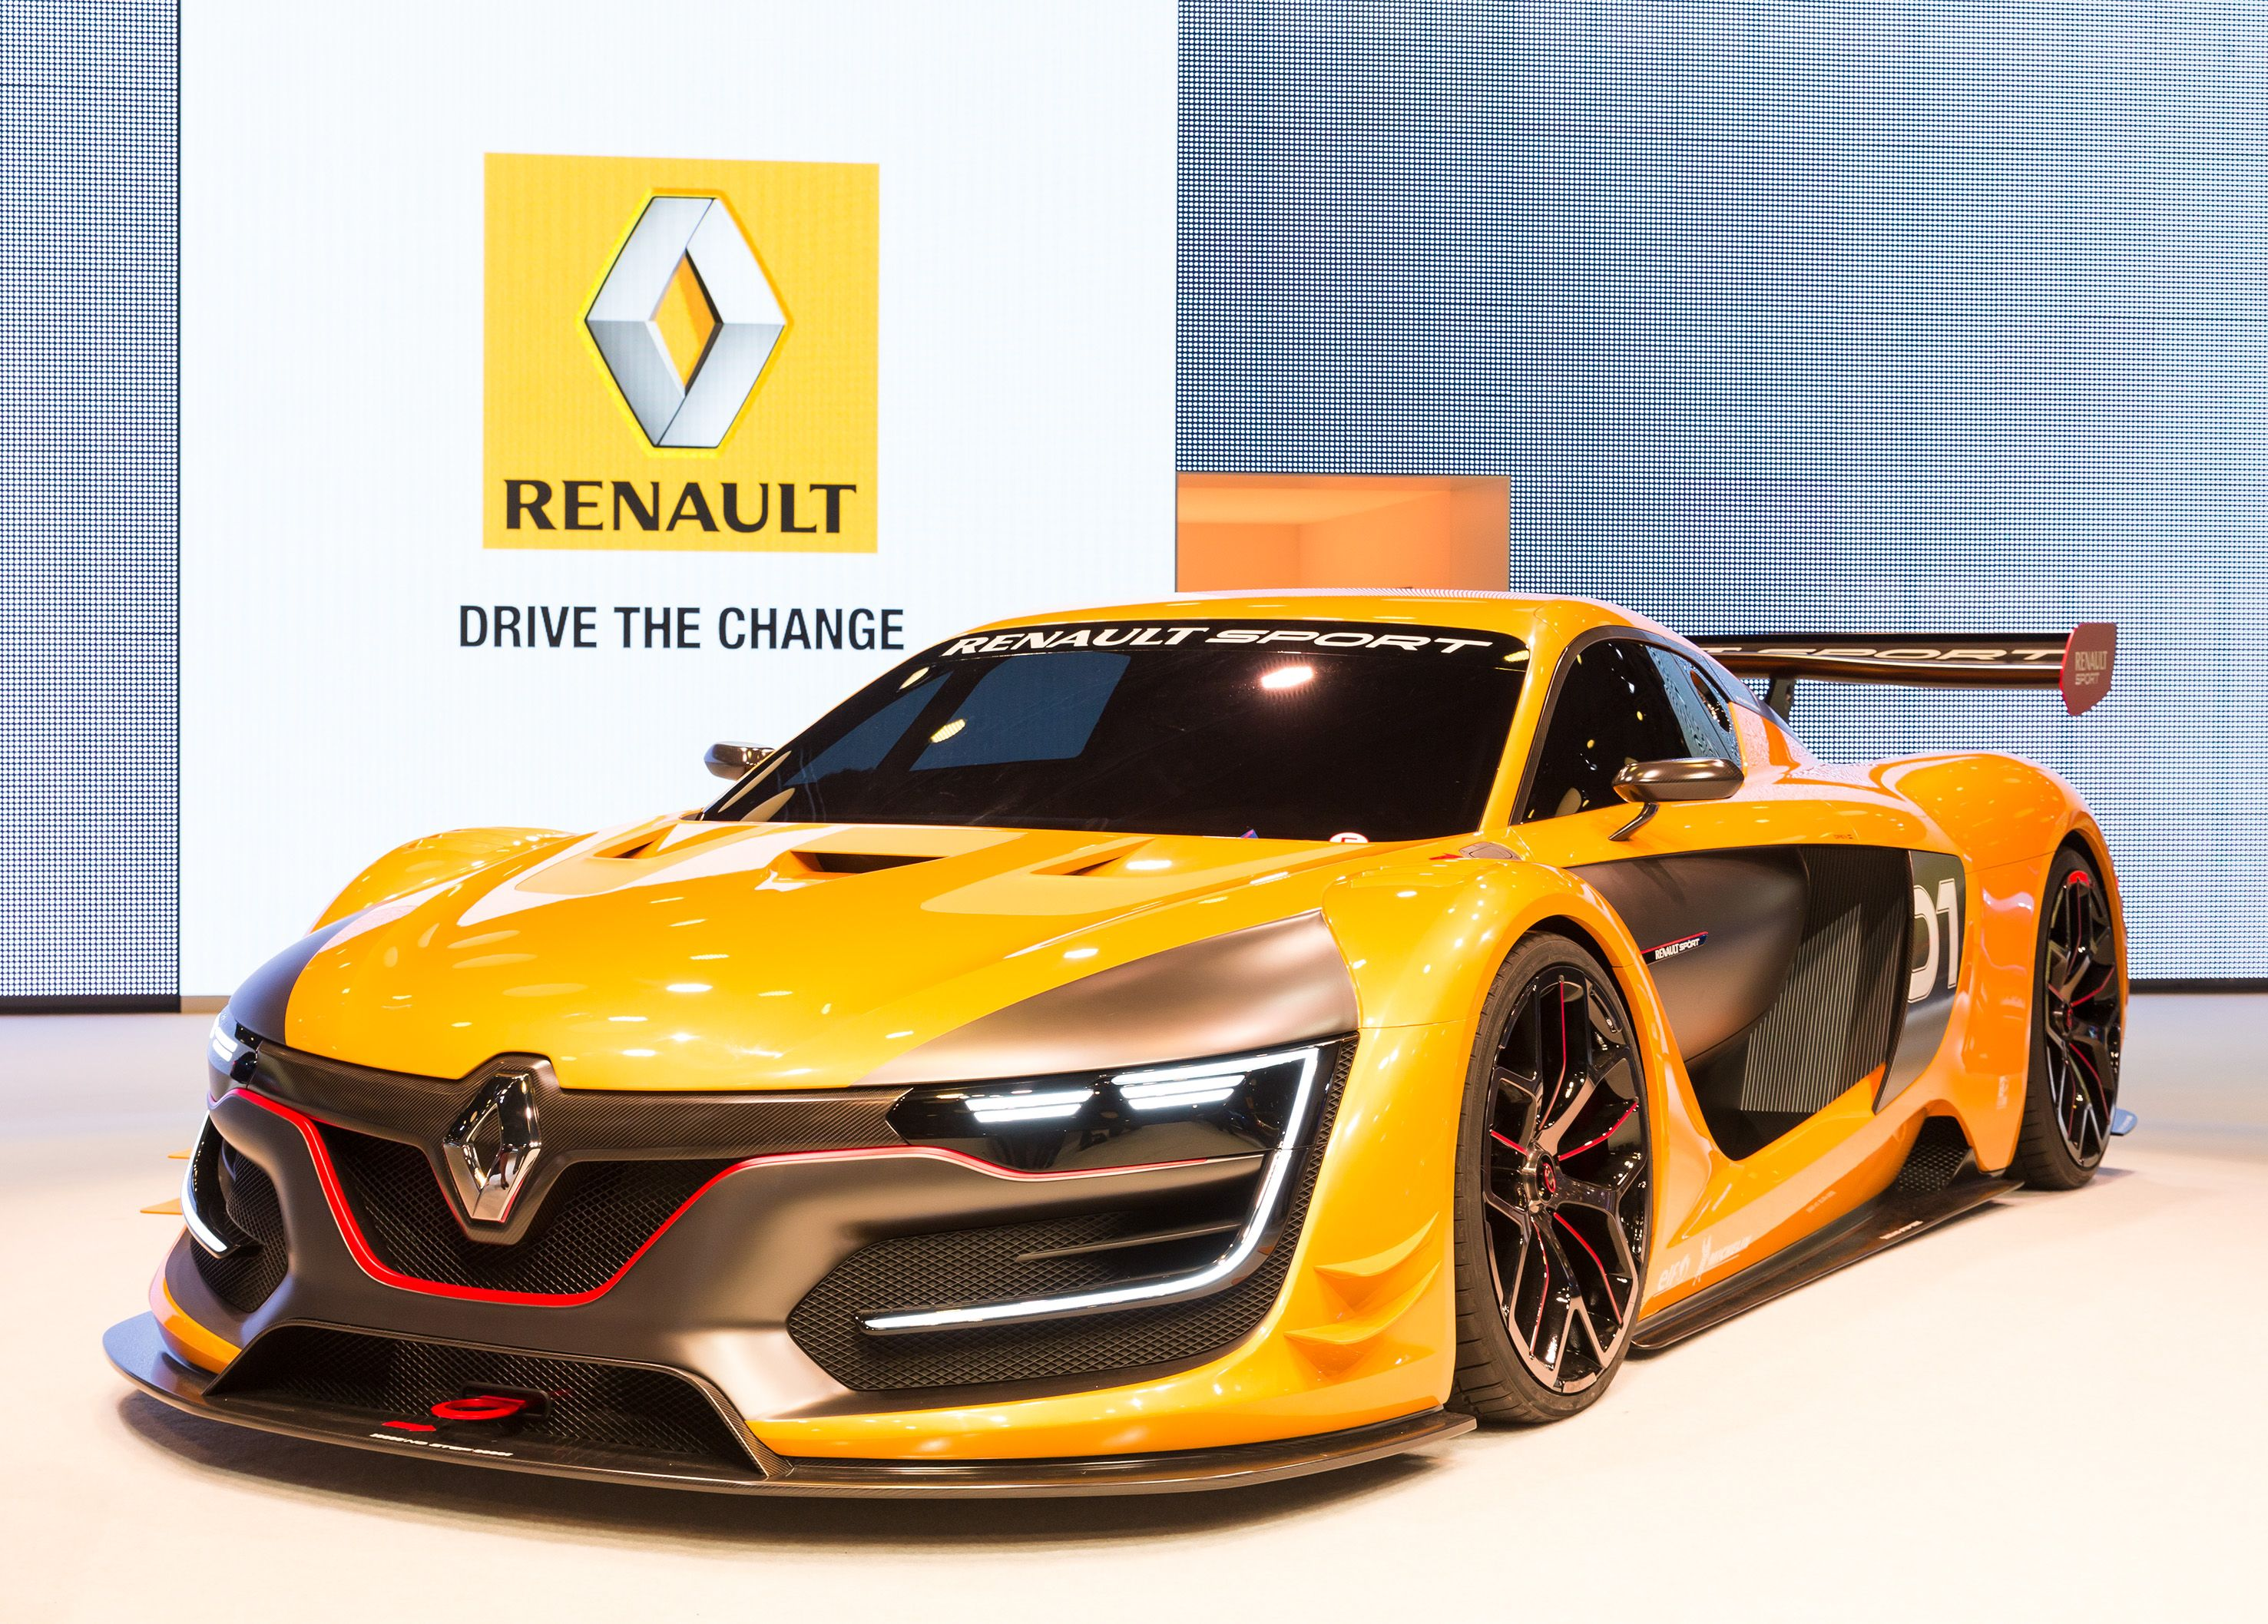 Renault Sport R.S. 01   Taxi Locations In Los Angeles   Cars, Super ... b4ae9d52c380